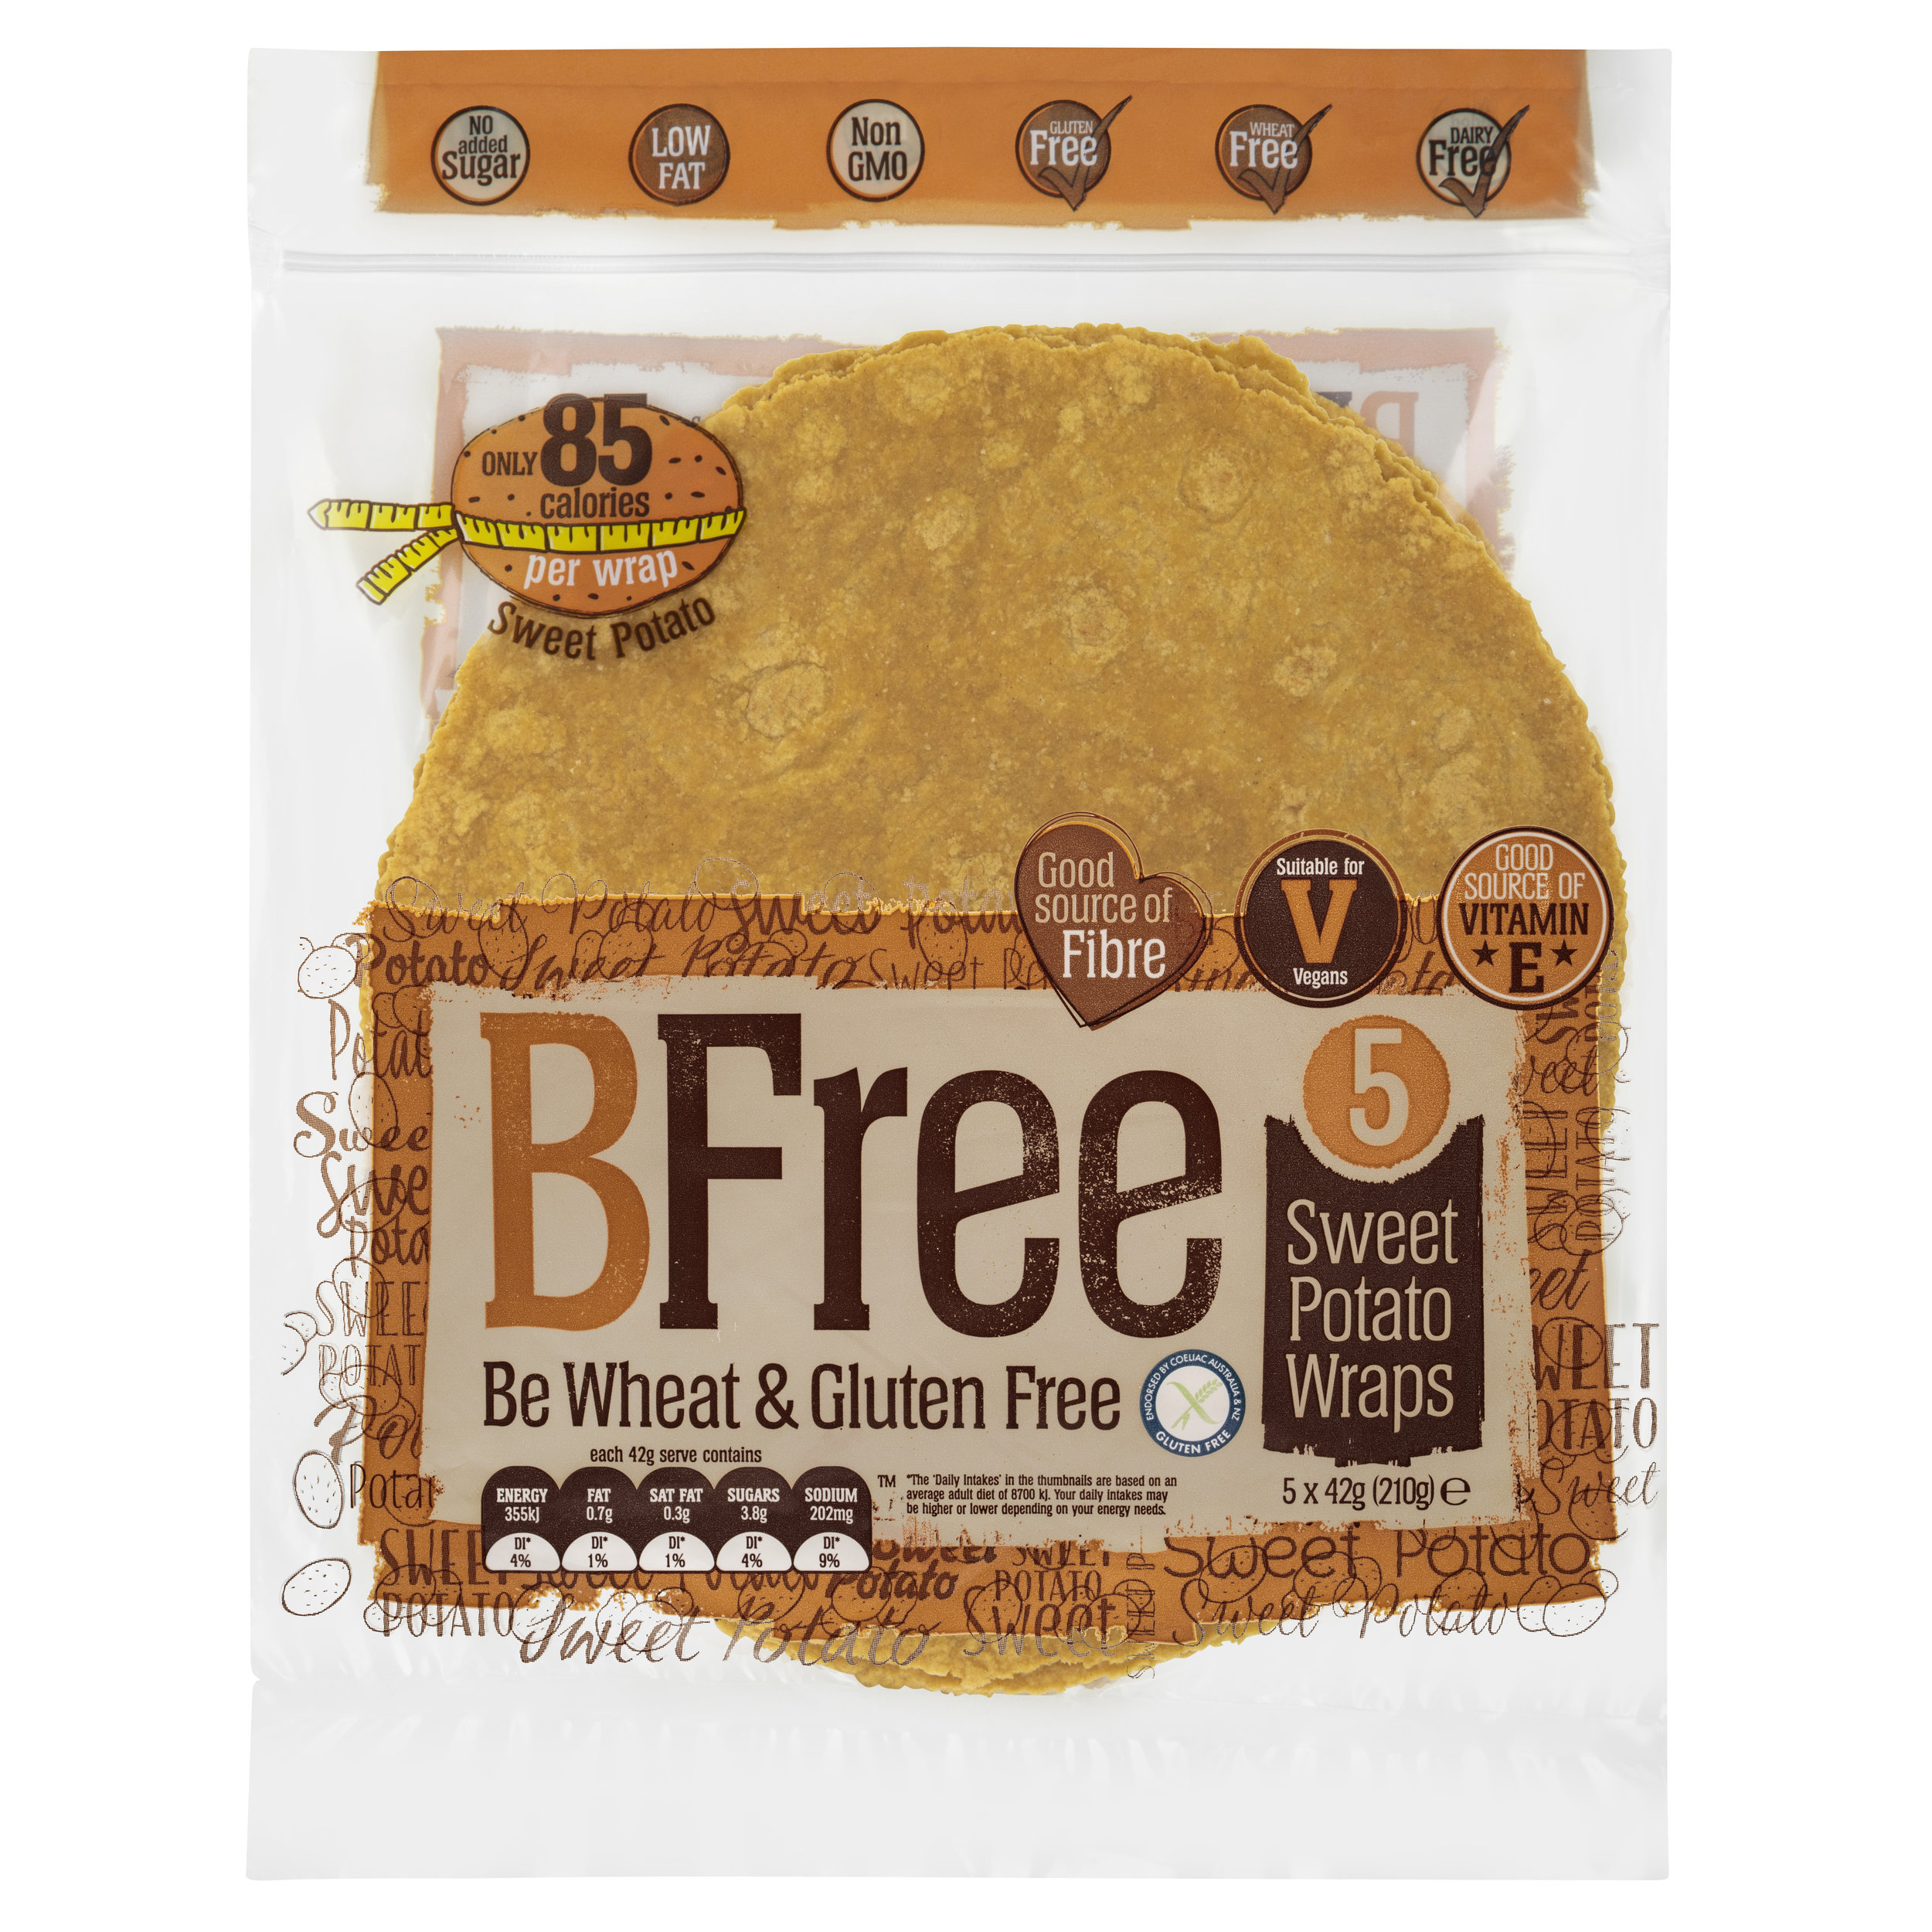 BFree 5 Sweet Potato Wraps